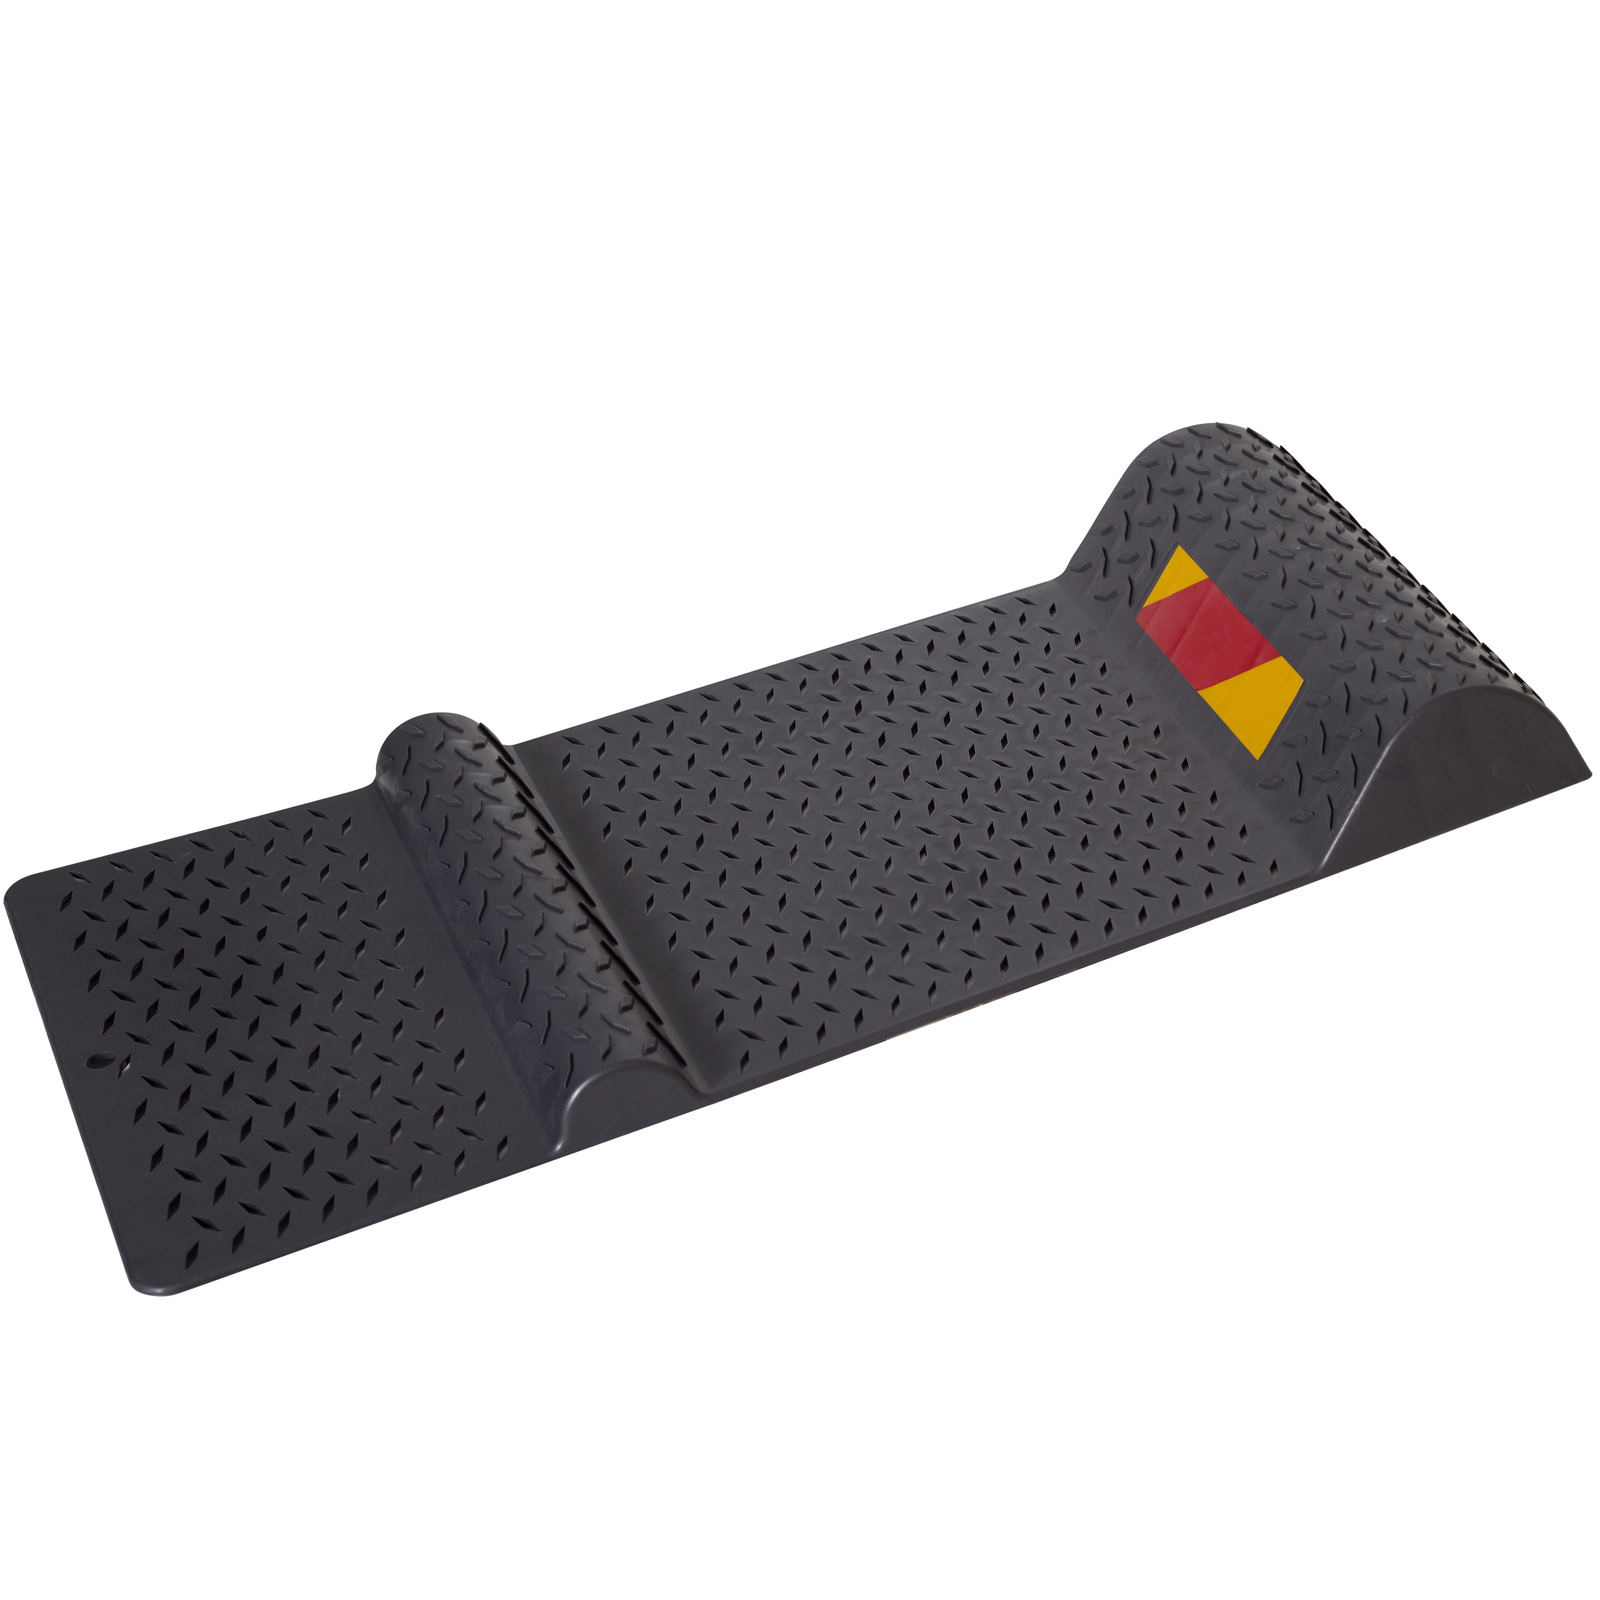 car parking mat assist garage floor for truck suv stop protection bump safety